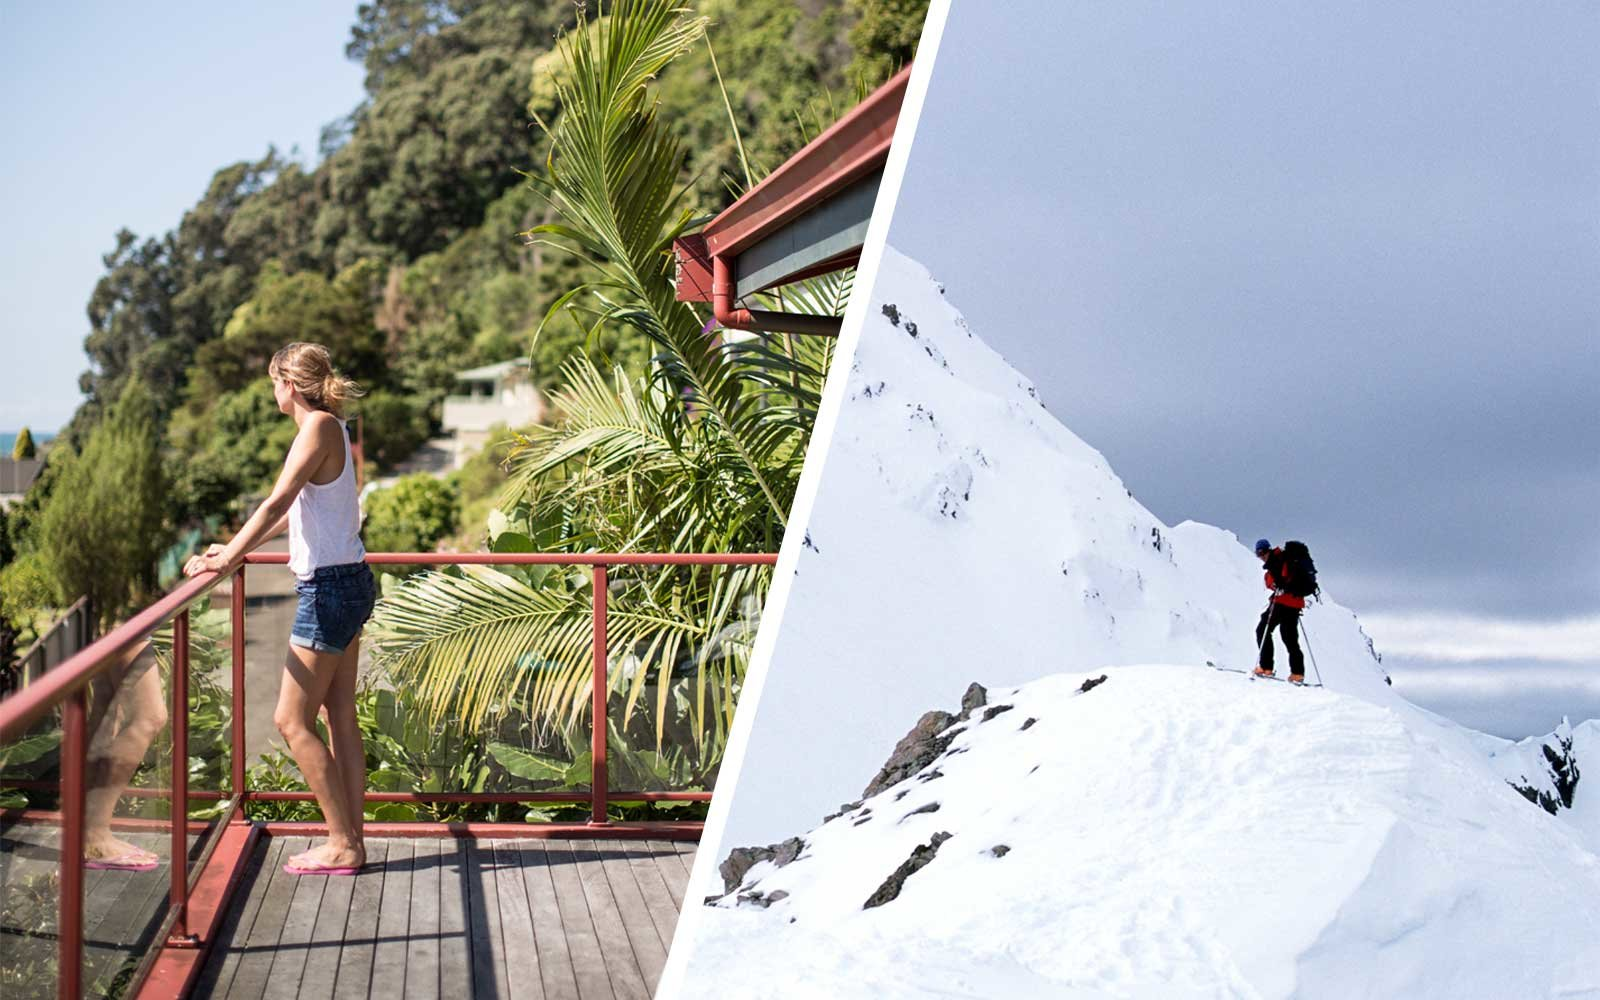 New Zealand in summer and winter